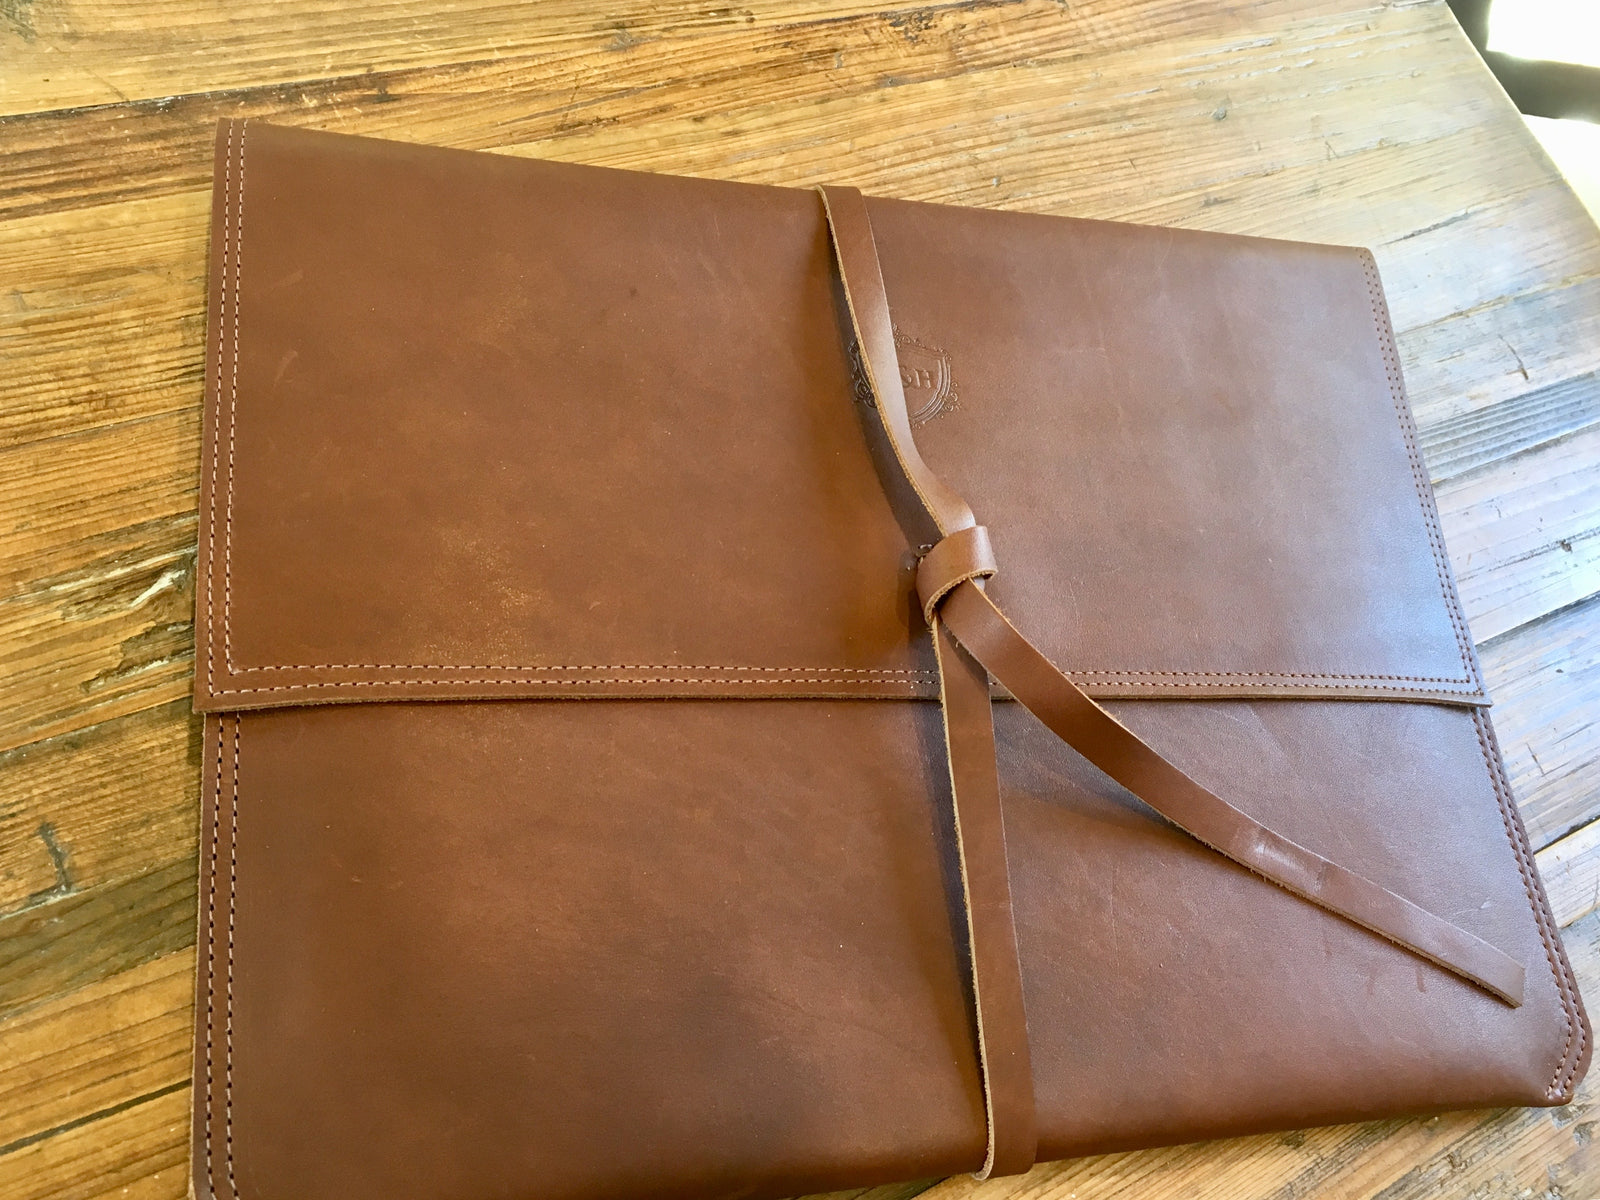 Leather Laptop Sleeve - Swagger & Hide | Our leather luggage accessories and leather travel bags make the perfect gift for him!  All of our products are handcrafted and personalised.